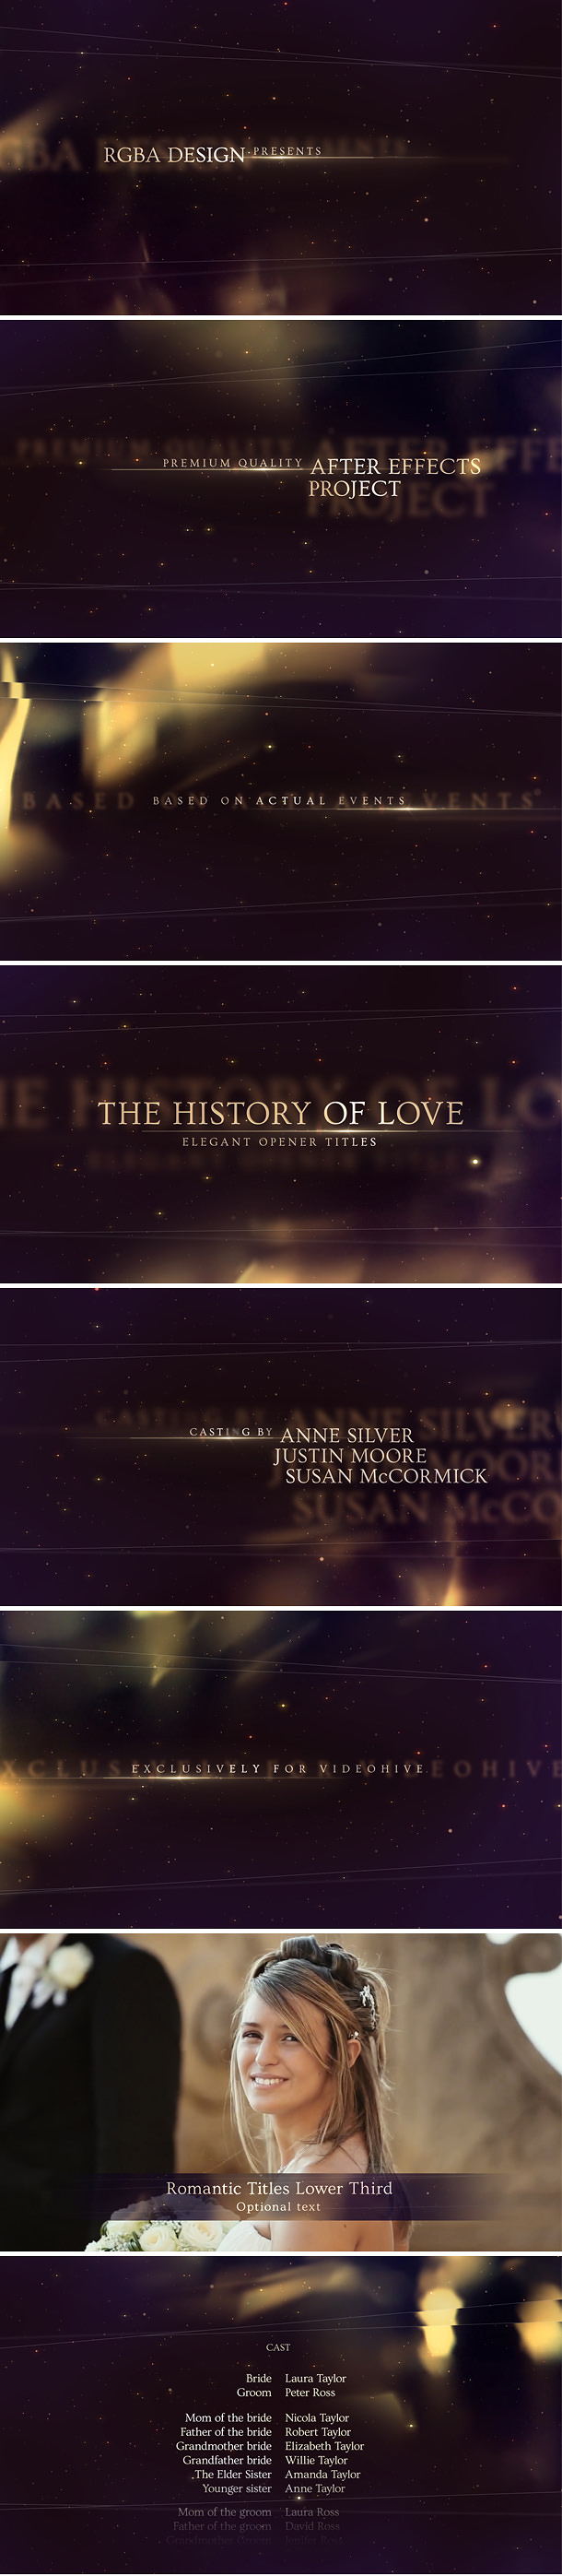 Elegant Titles After Effects Template with golden bokeh lights and shimmering particles, perfect for majestic wedding film & beautiful love story